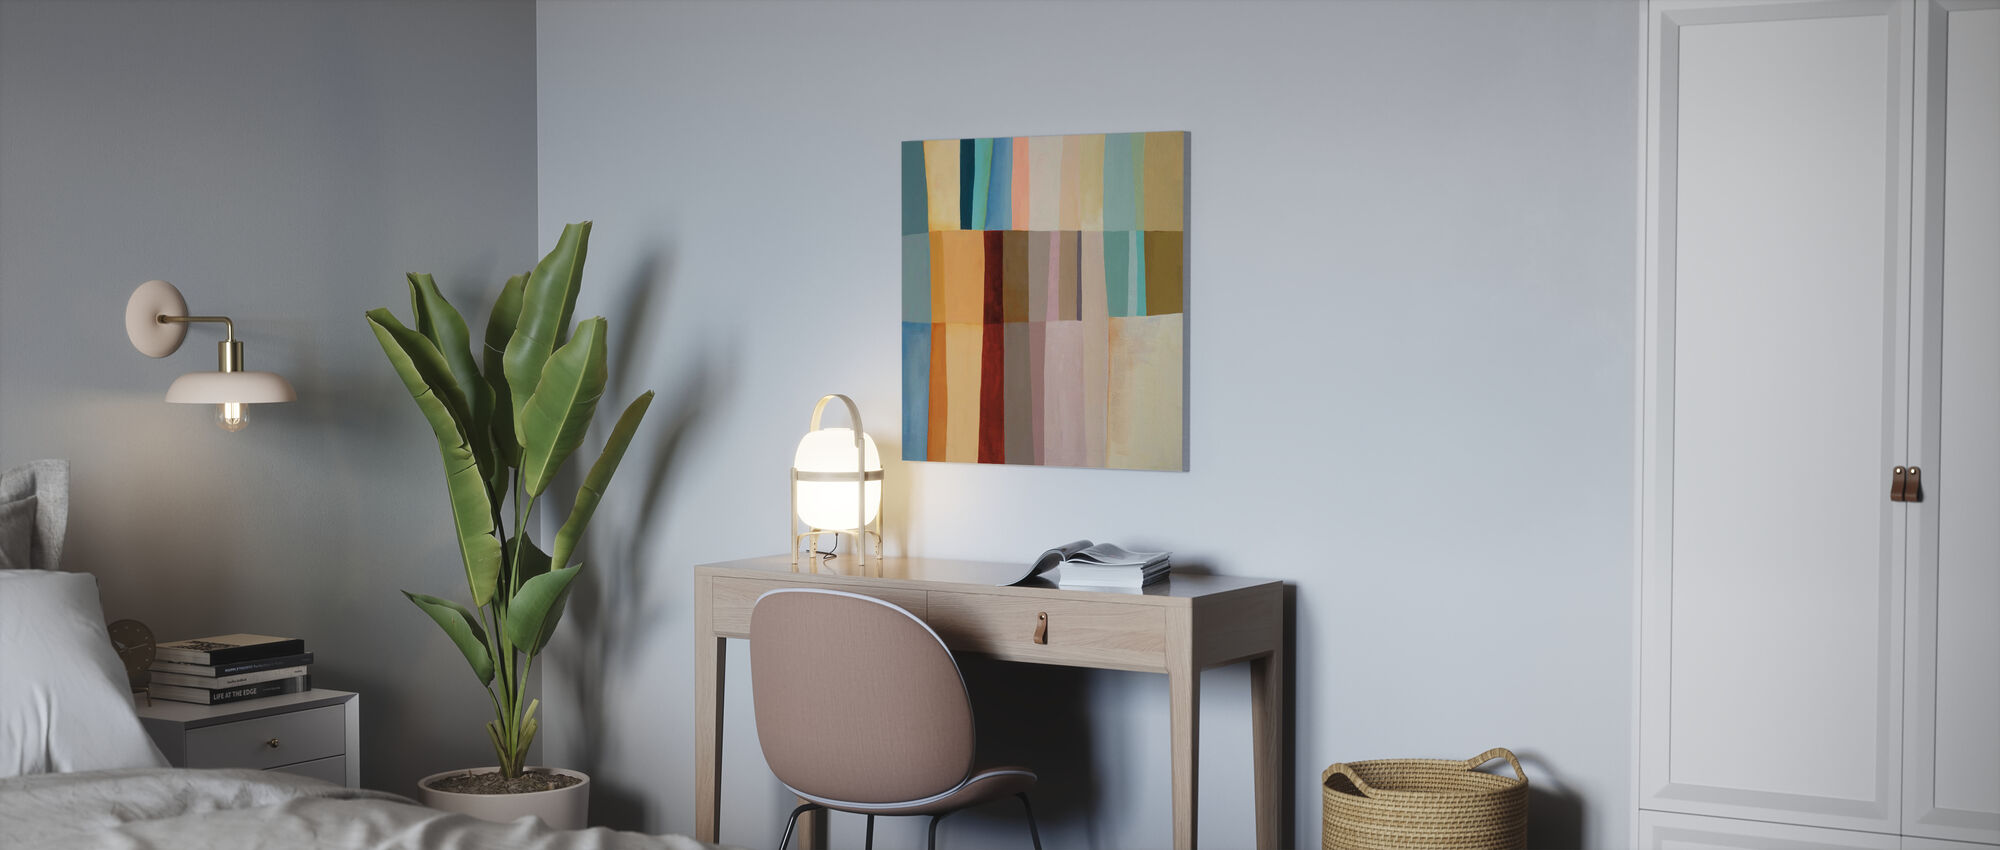 Stitched Together - Canvas print - Office